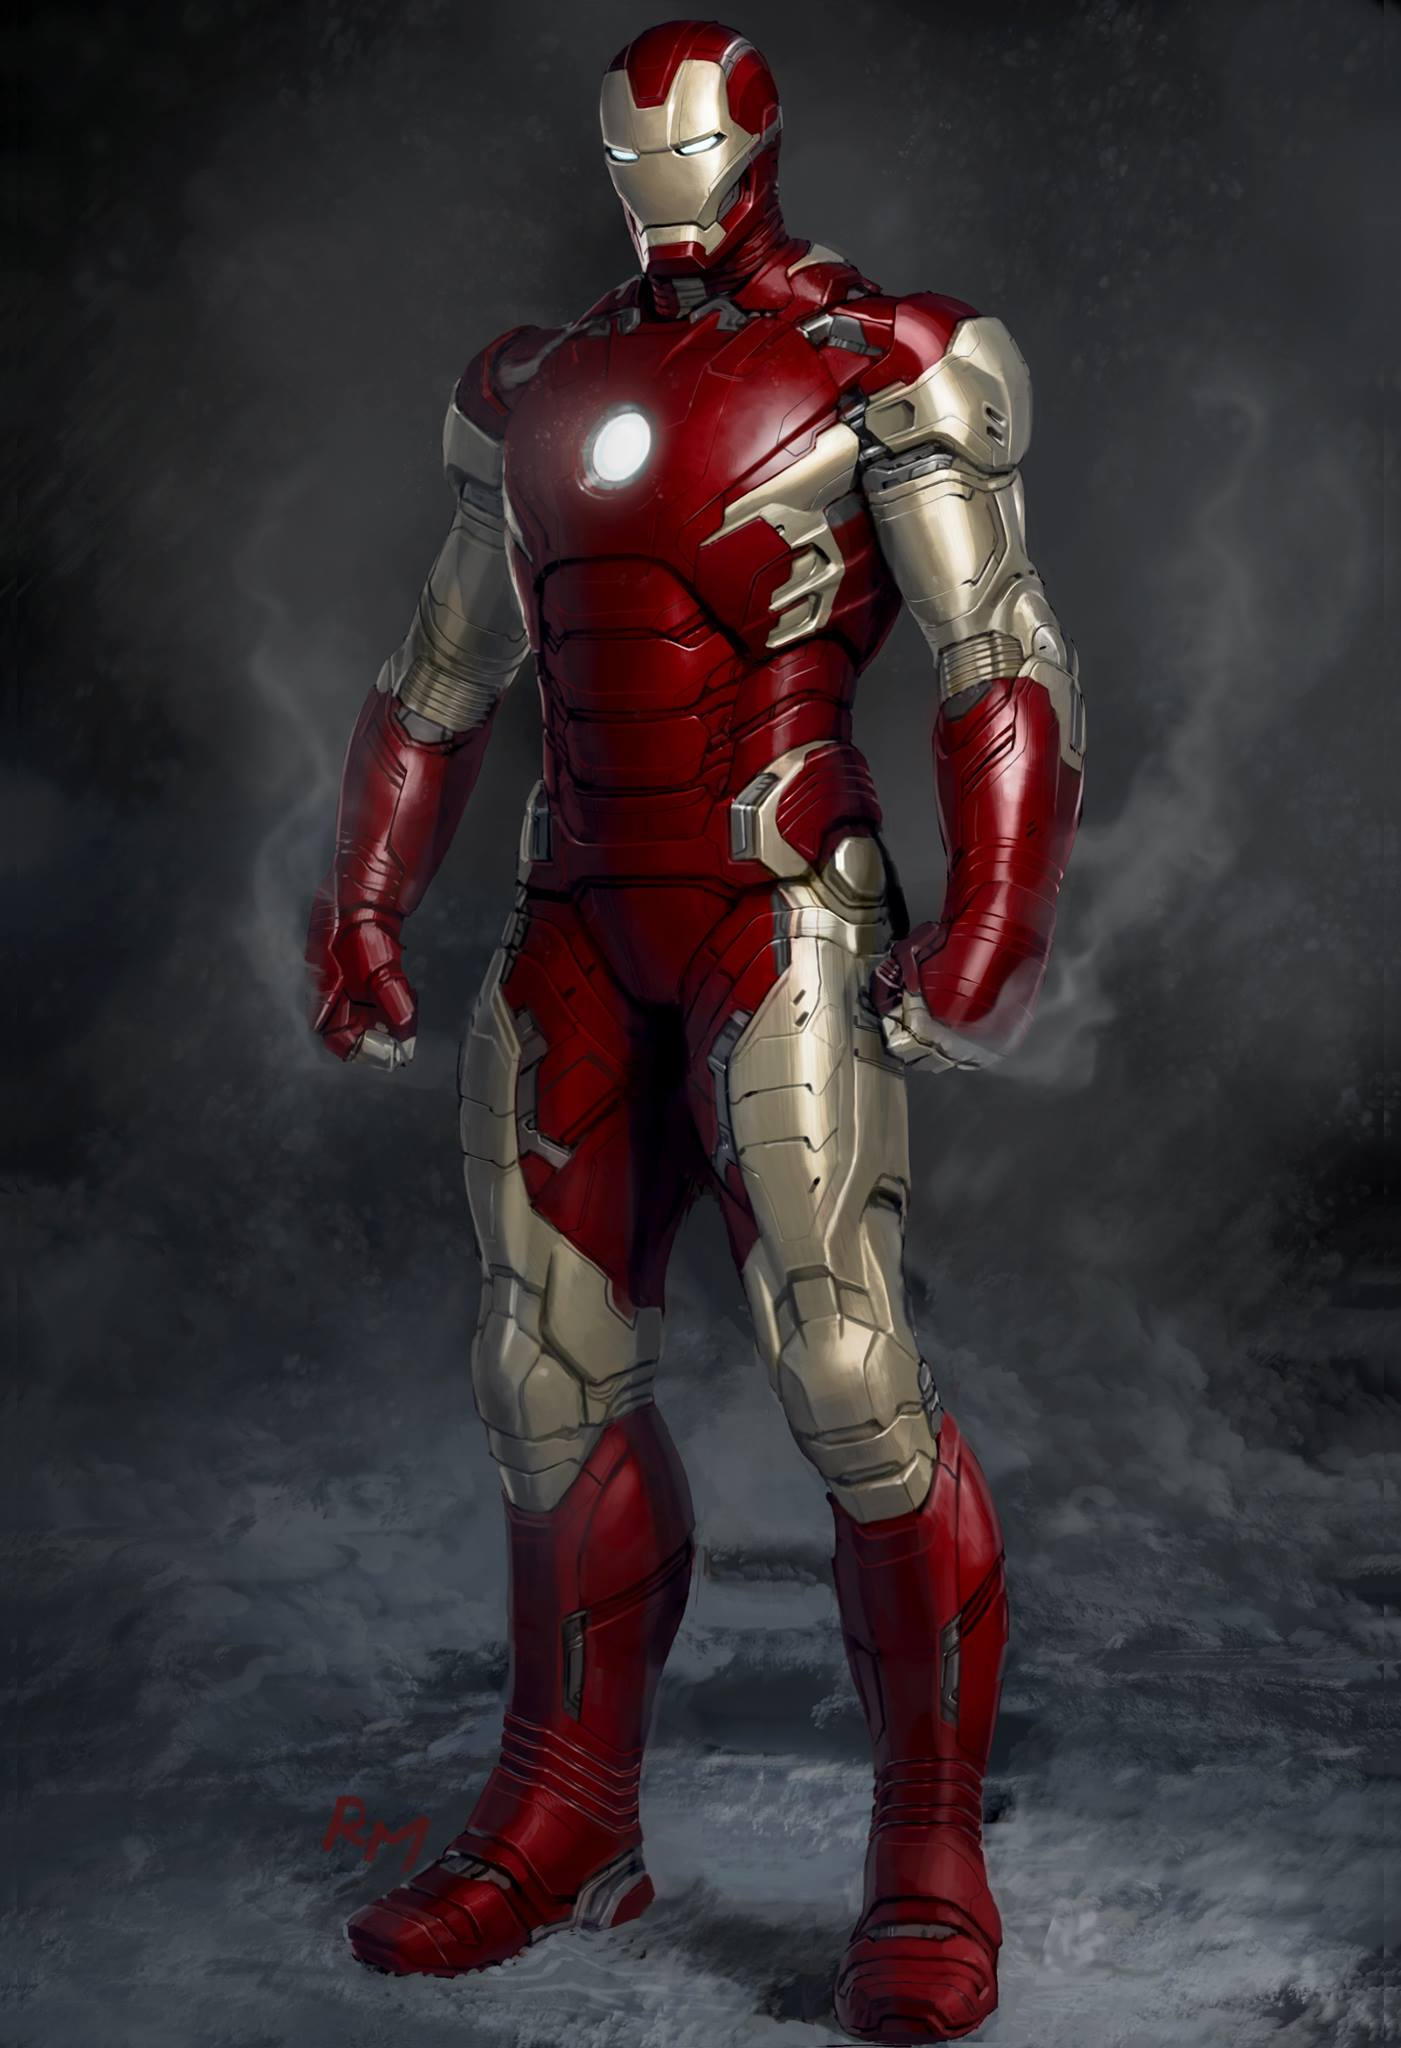 Avengers Infinity War Mark 48 Speculation